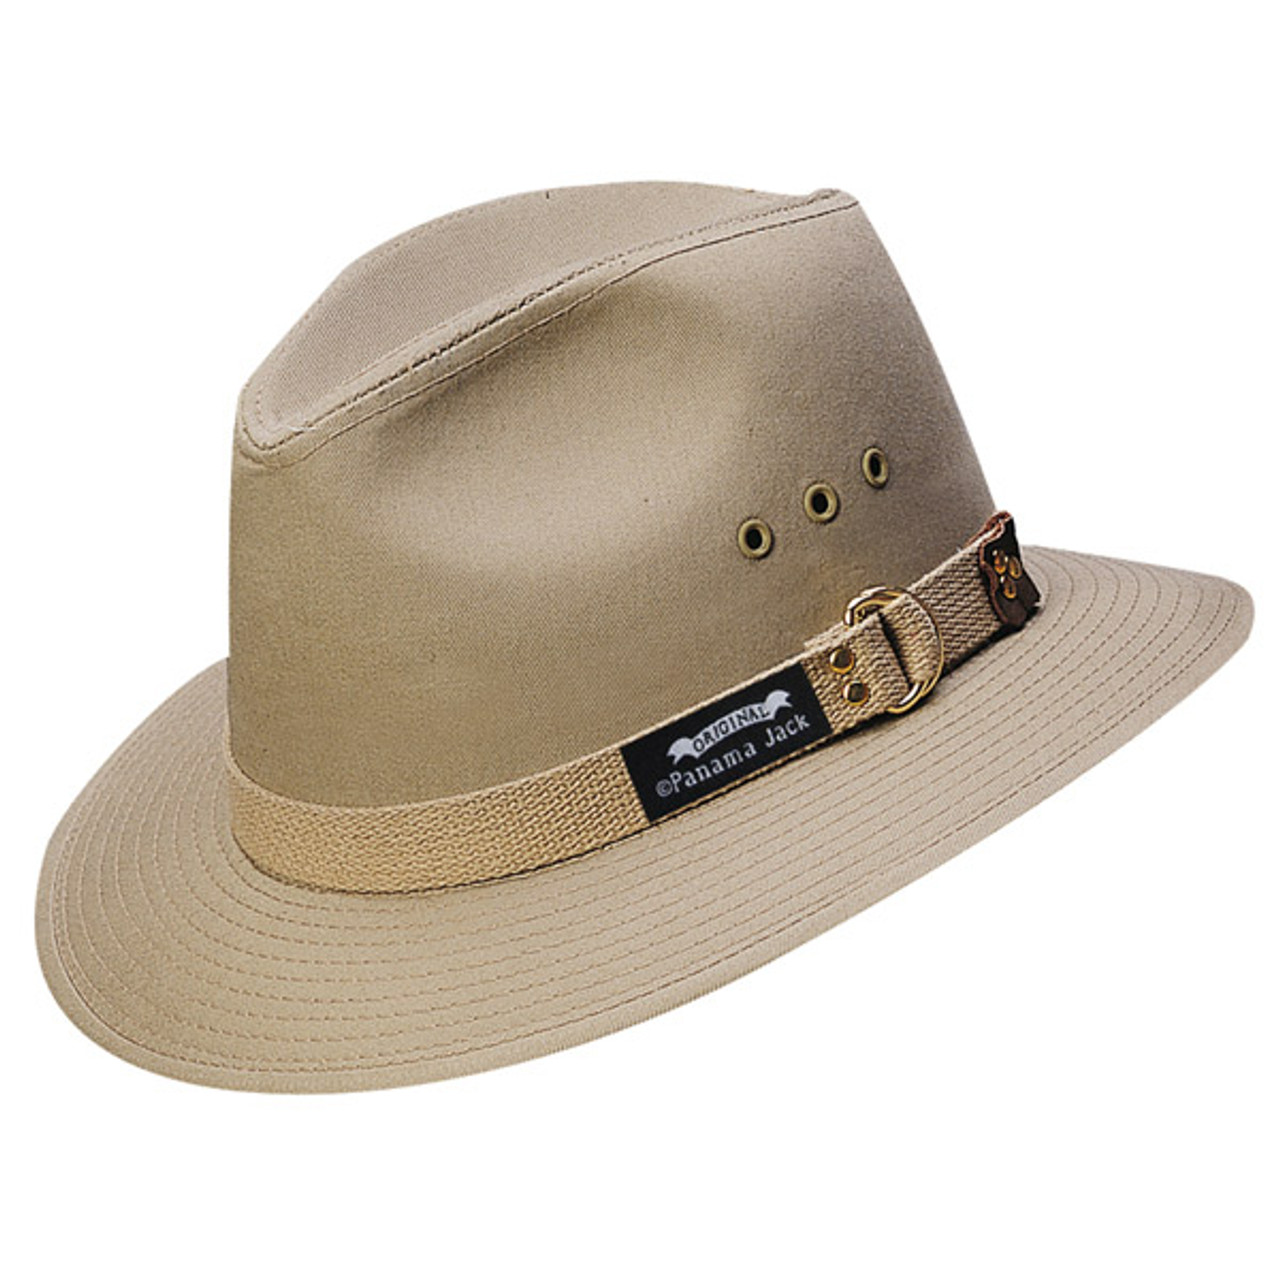 "UPF 50+ Sun Panama Jack Original Canvas Safari Hat Large 2 1//2/"" Brim"